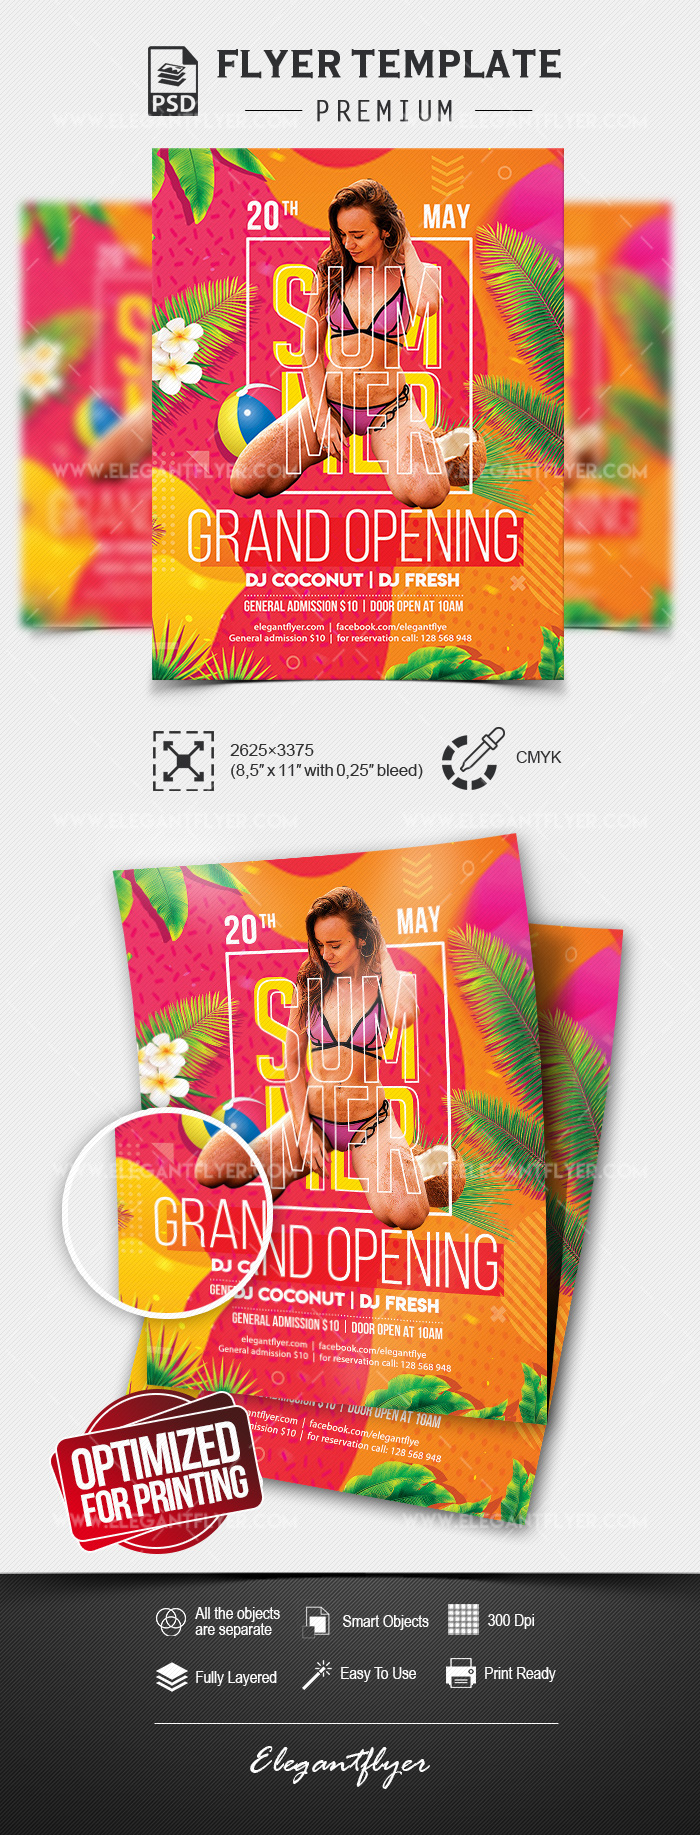 Summer Club Grand Opening – Premium Flyer Template in PSD